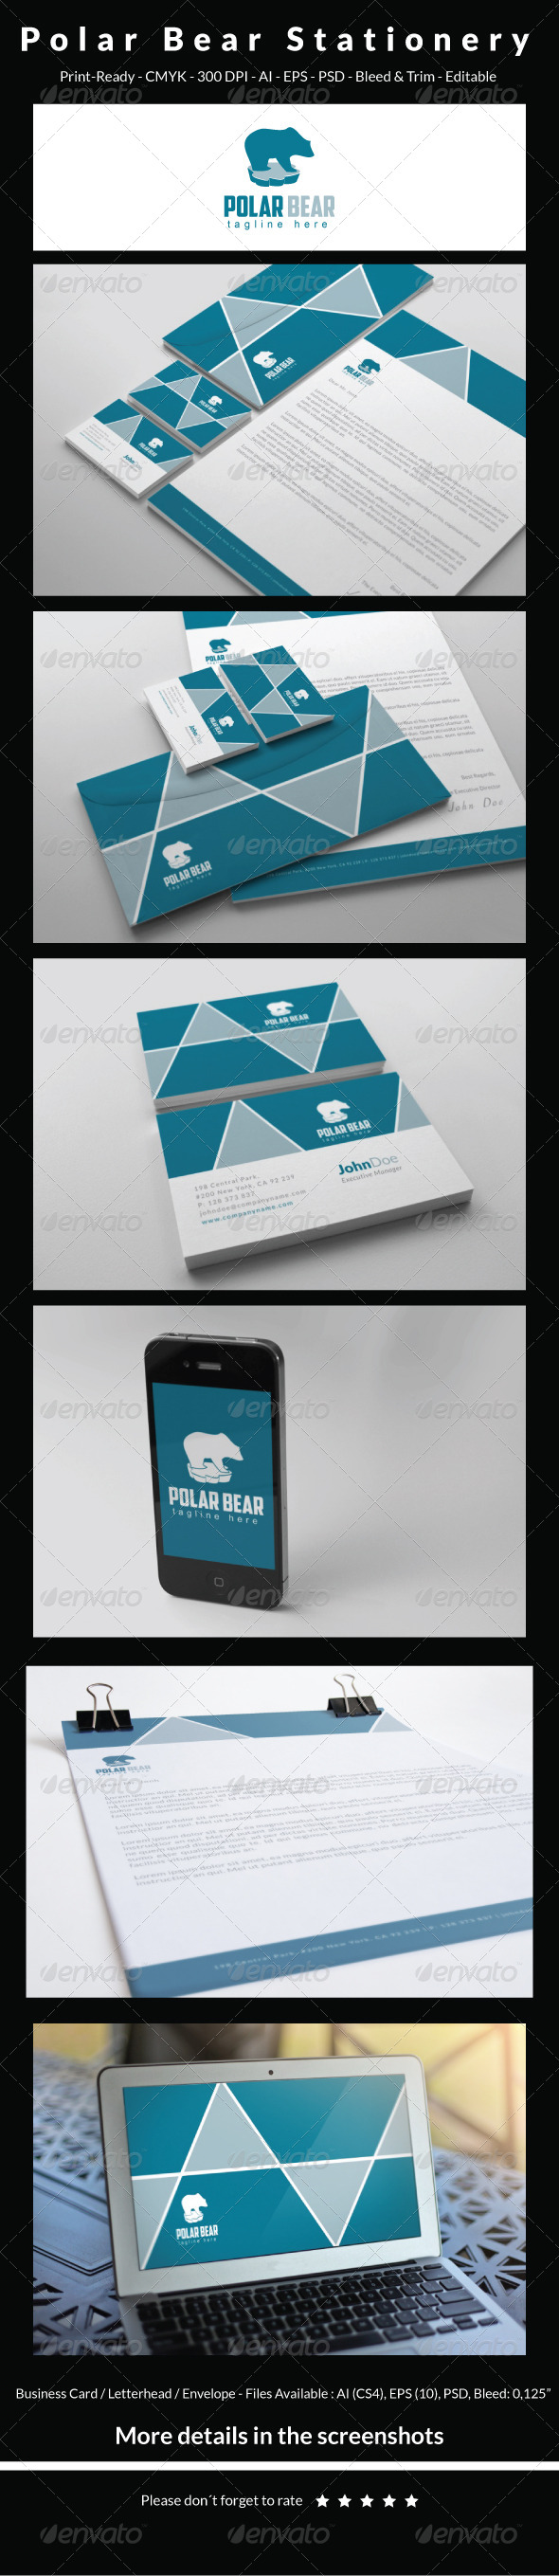 GraphicRiver Polar Bear Stationery 6457744